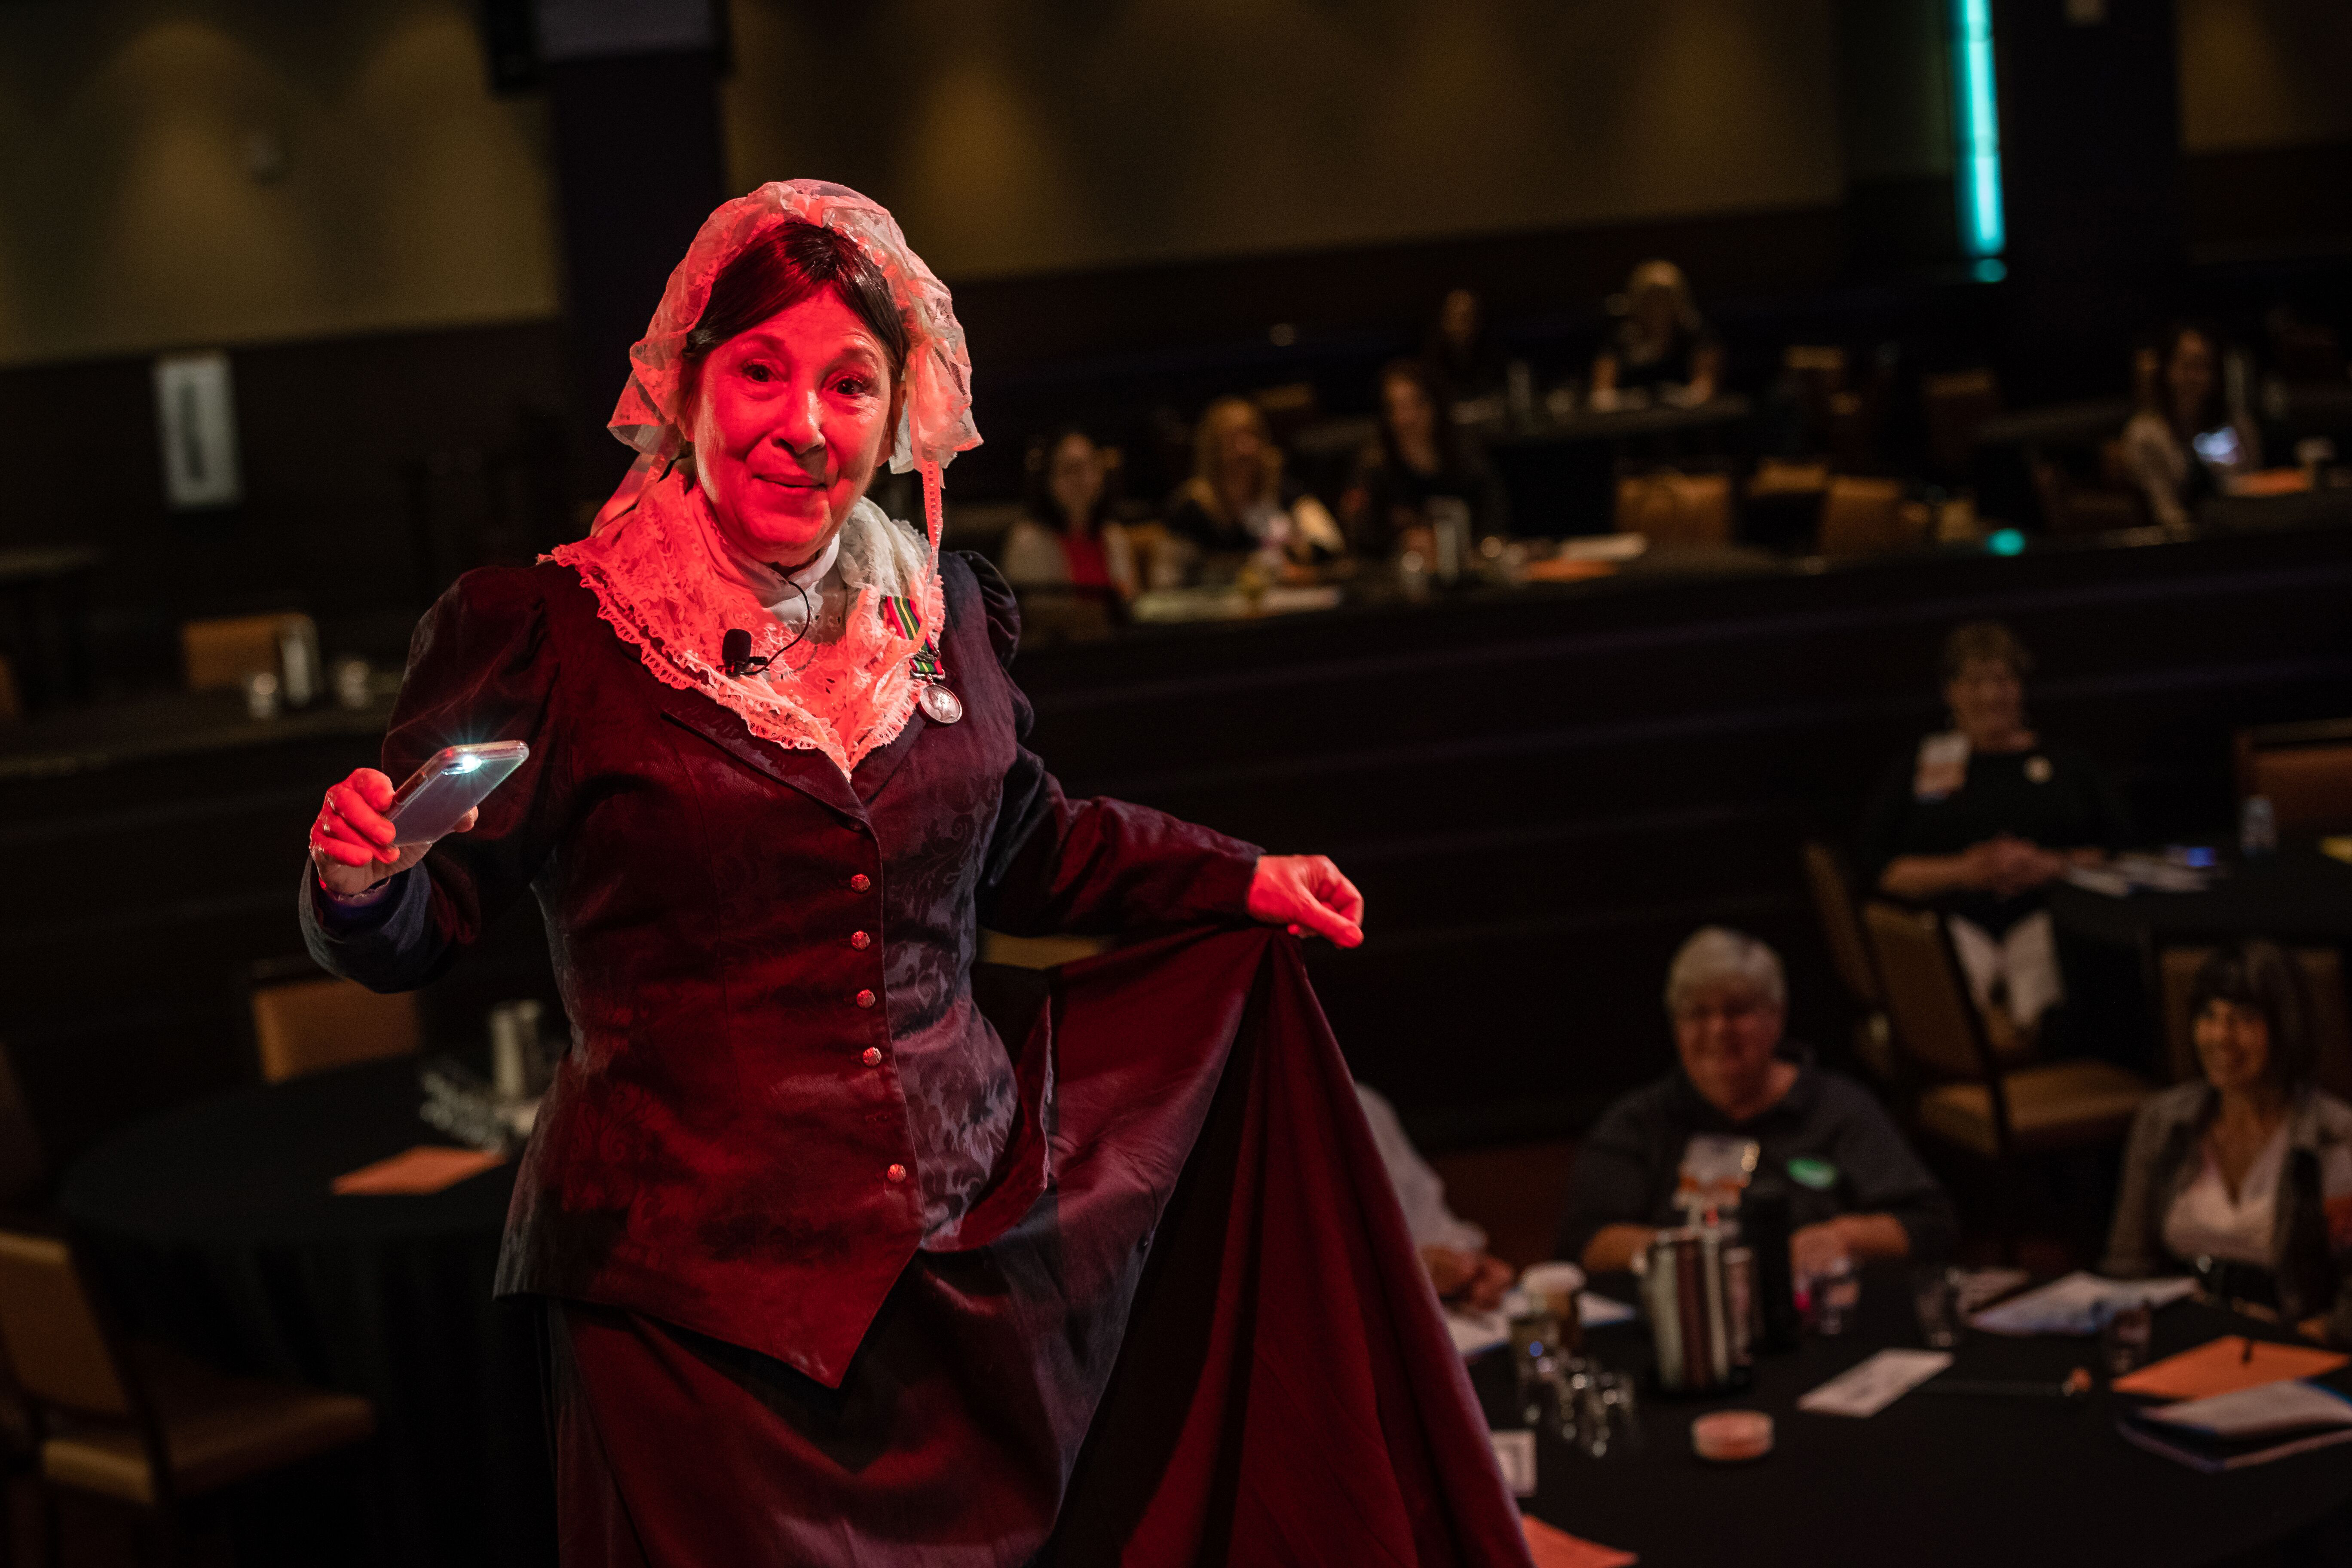 Florence Nightingale at De Anza College